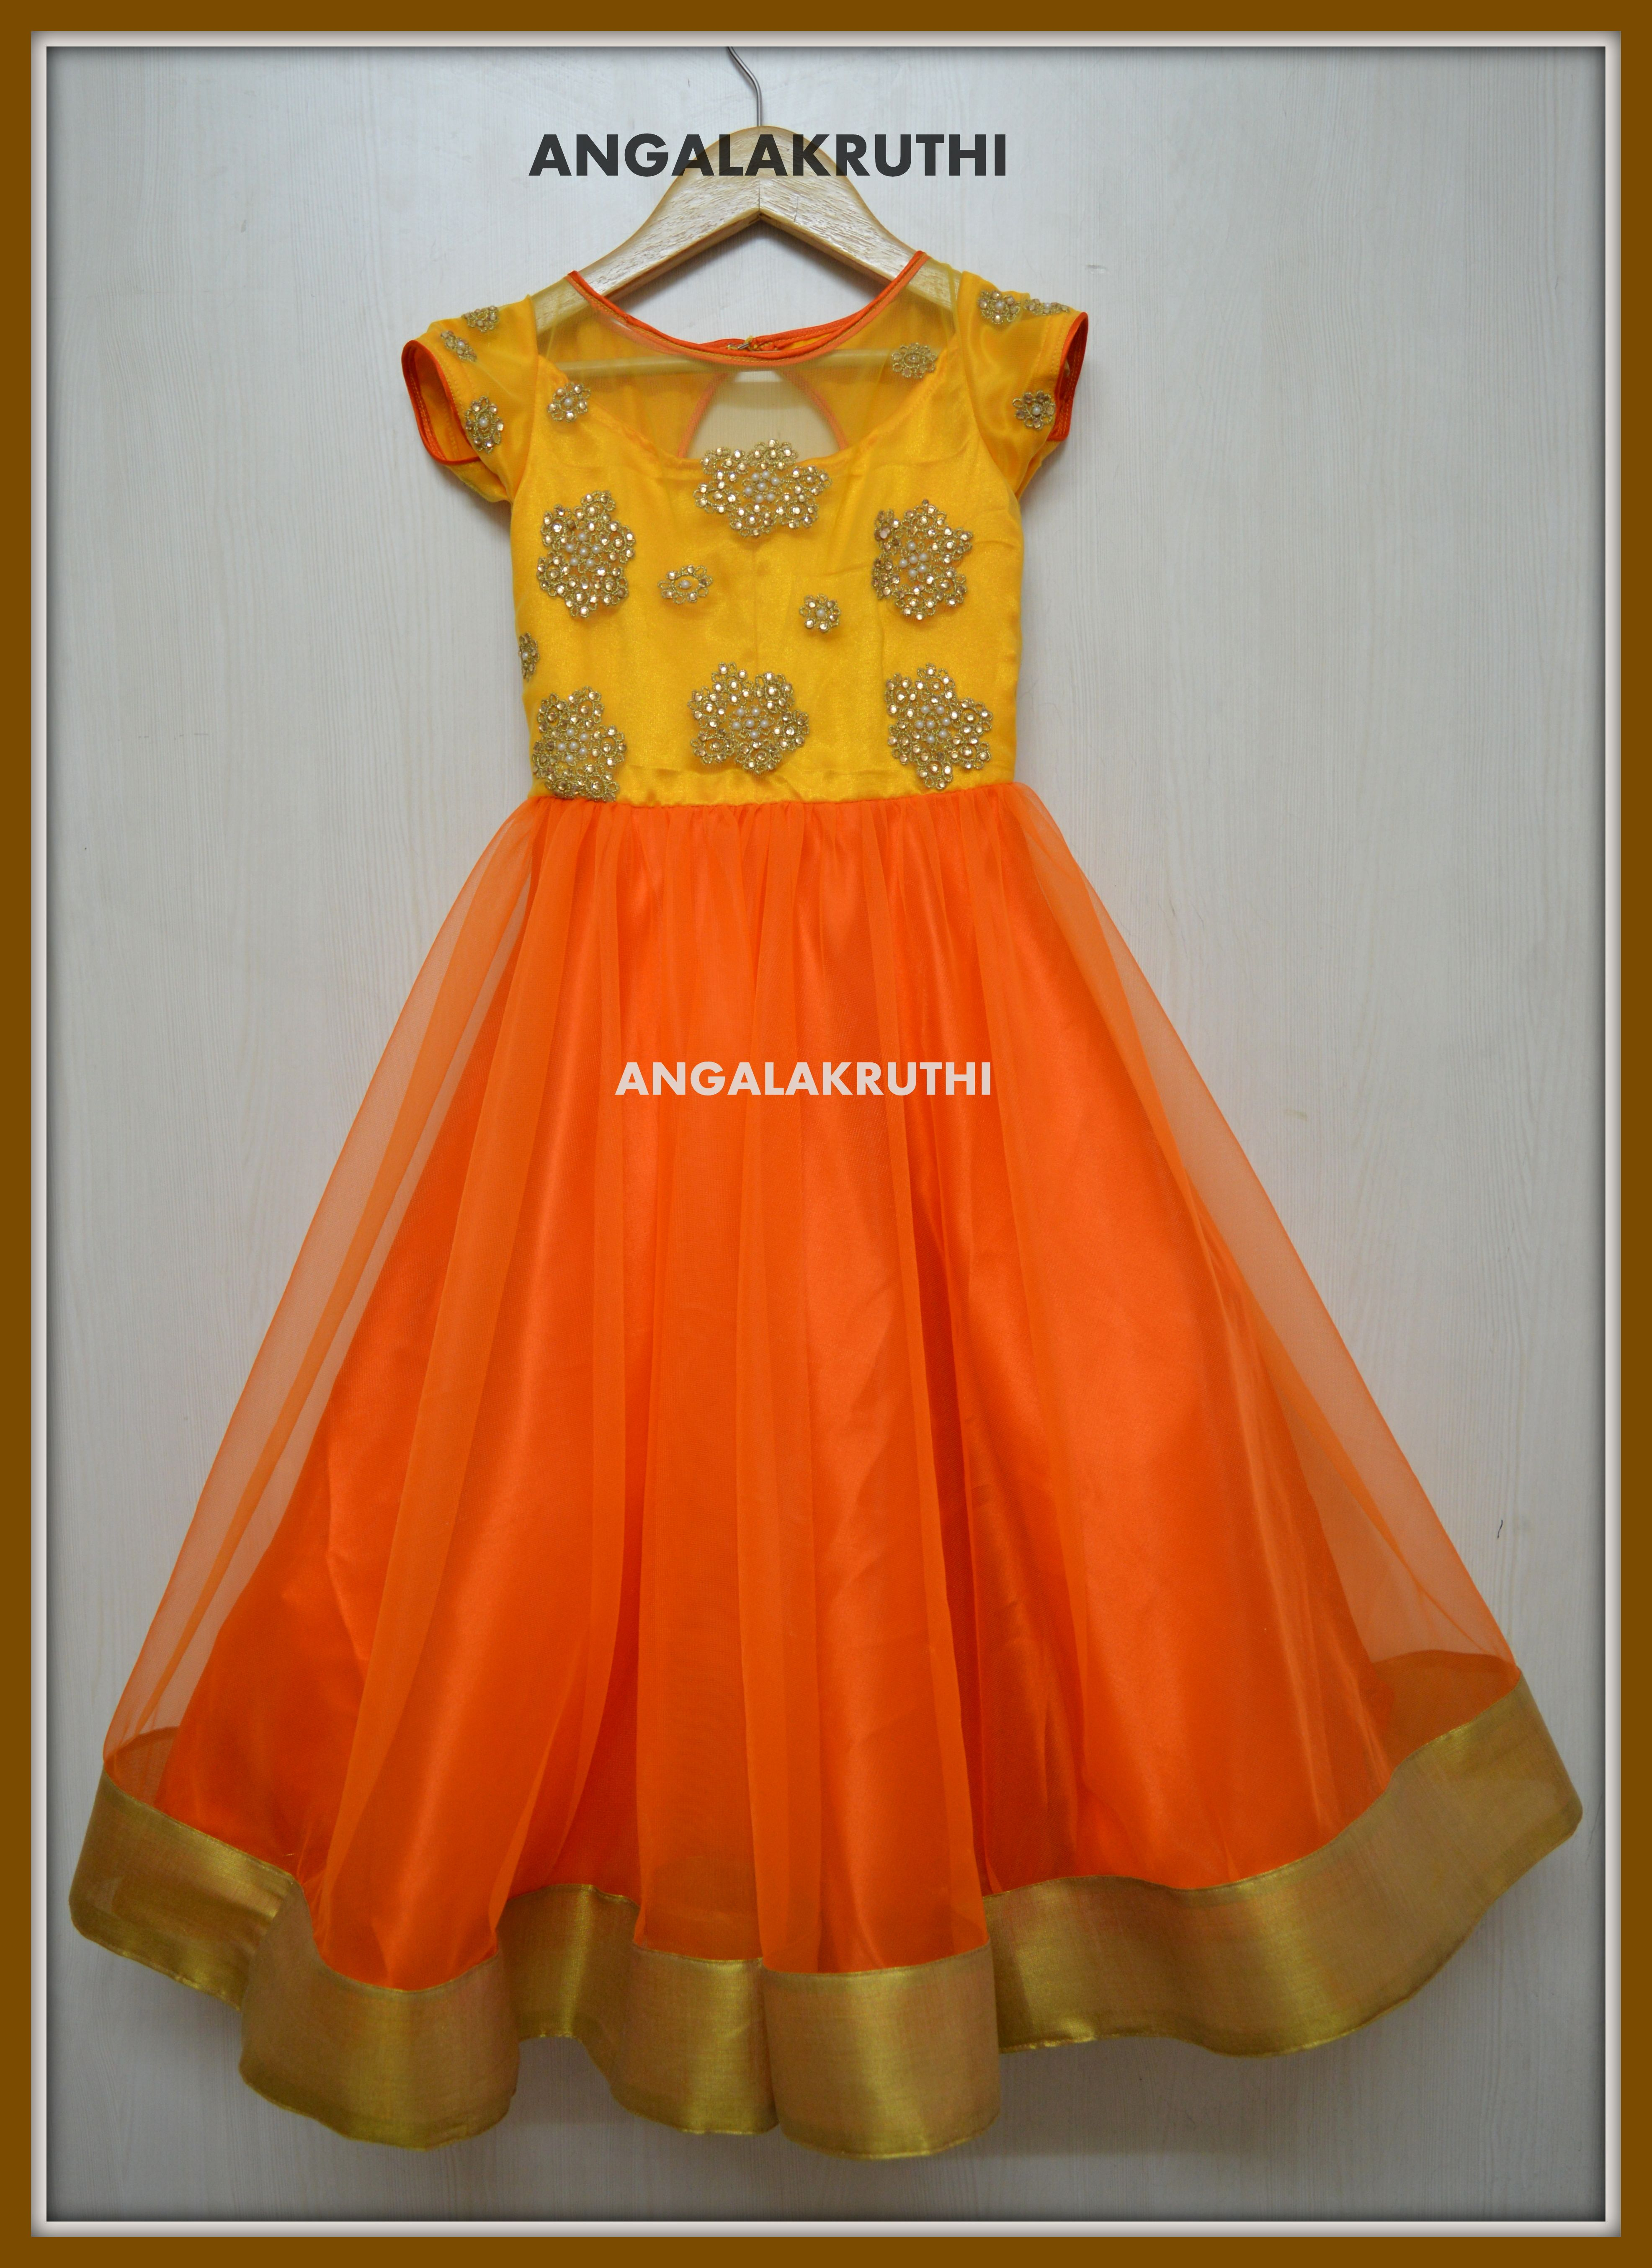 Angalakruthi ladies and kids boutique in bangalore kids gown designs